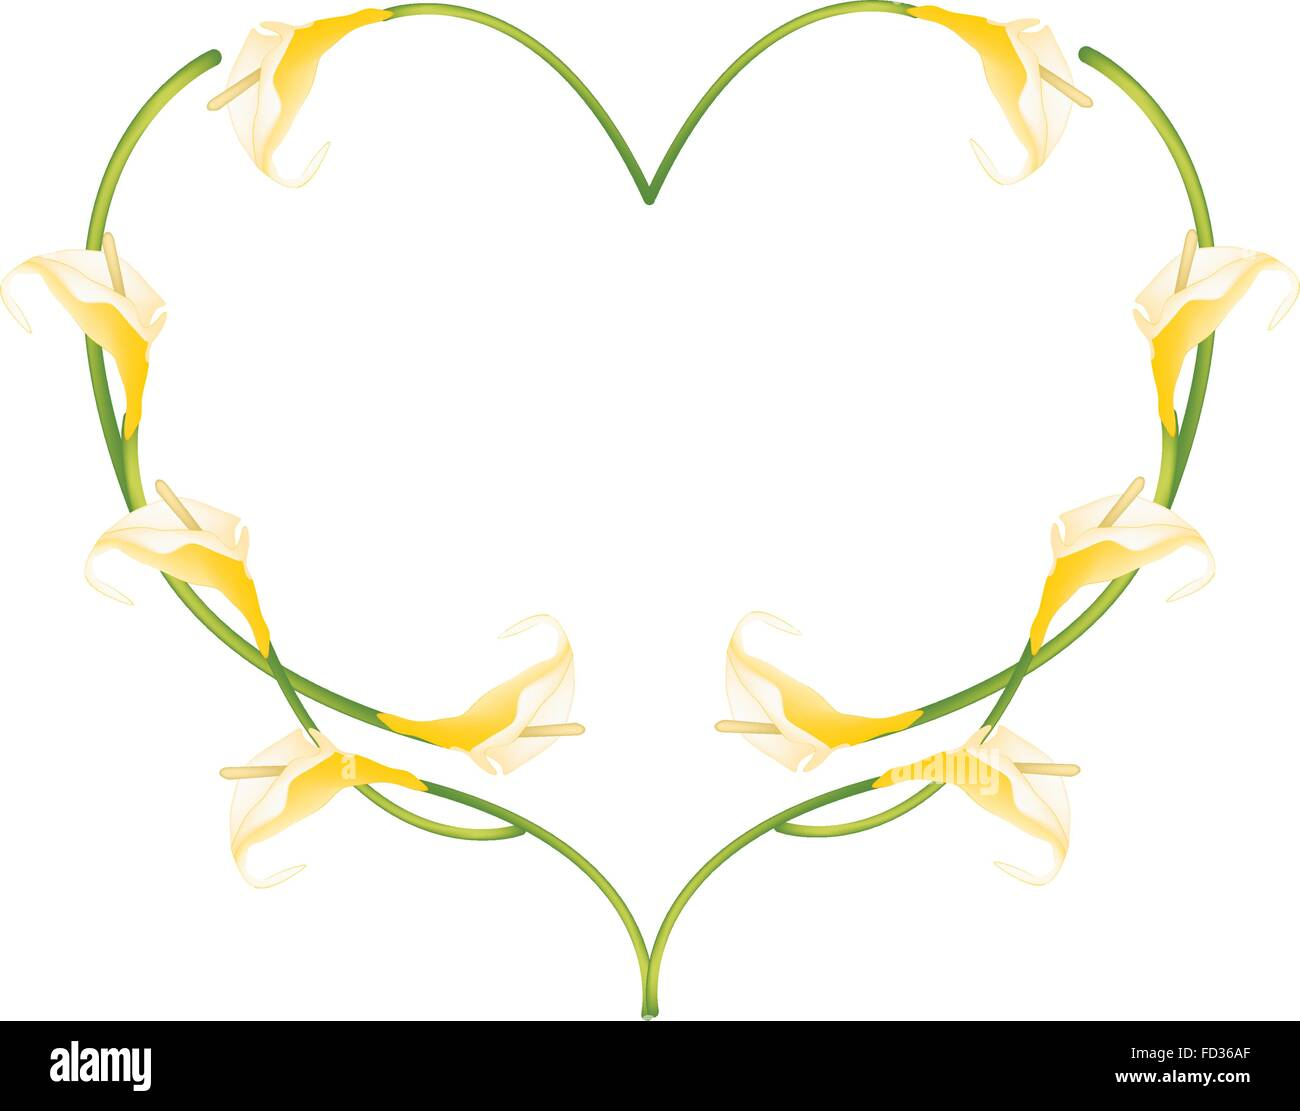 Love Concept, Illustration of Yellow Anthurium Flowers or Flamingo Flowers Forming in Heart Shape Isolated on White - Stock Vector